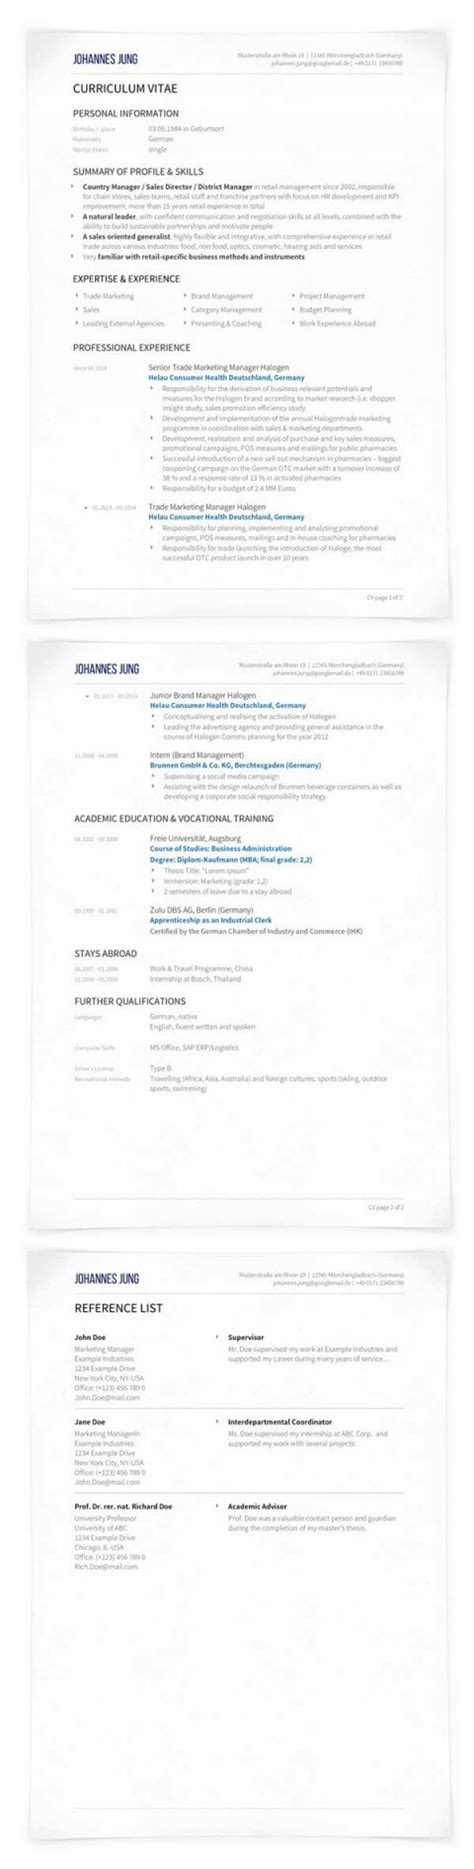 Lebenslauf Englisch  Cv Oder Résumé  Unterschiede. Curriculum Vitae Da Compilare Facile. Curriculum Vitae Formato Australiano. Resume Cover Letter Examples Doc. Editable Resume Template Free Download. Letter Label Template Word. Resume Free Creative Templates. Curriculum Vitae Ejemplo Ingeniero Industrial. Killer Cover Letters And Resumes Consulting